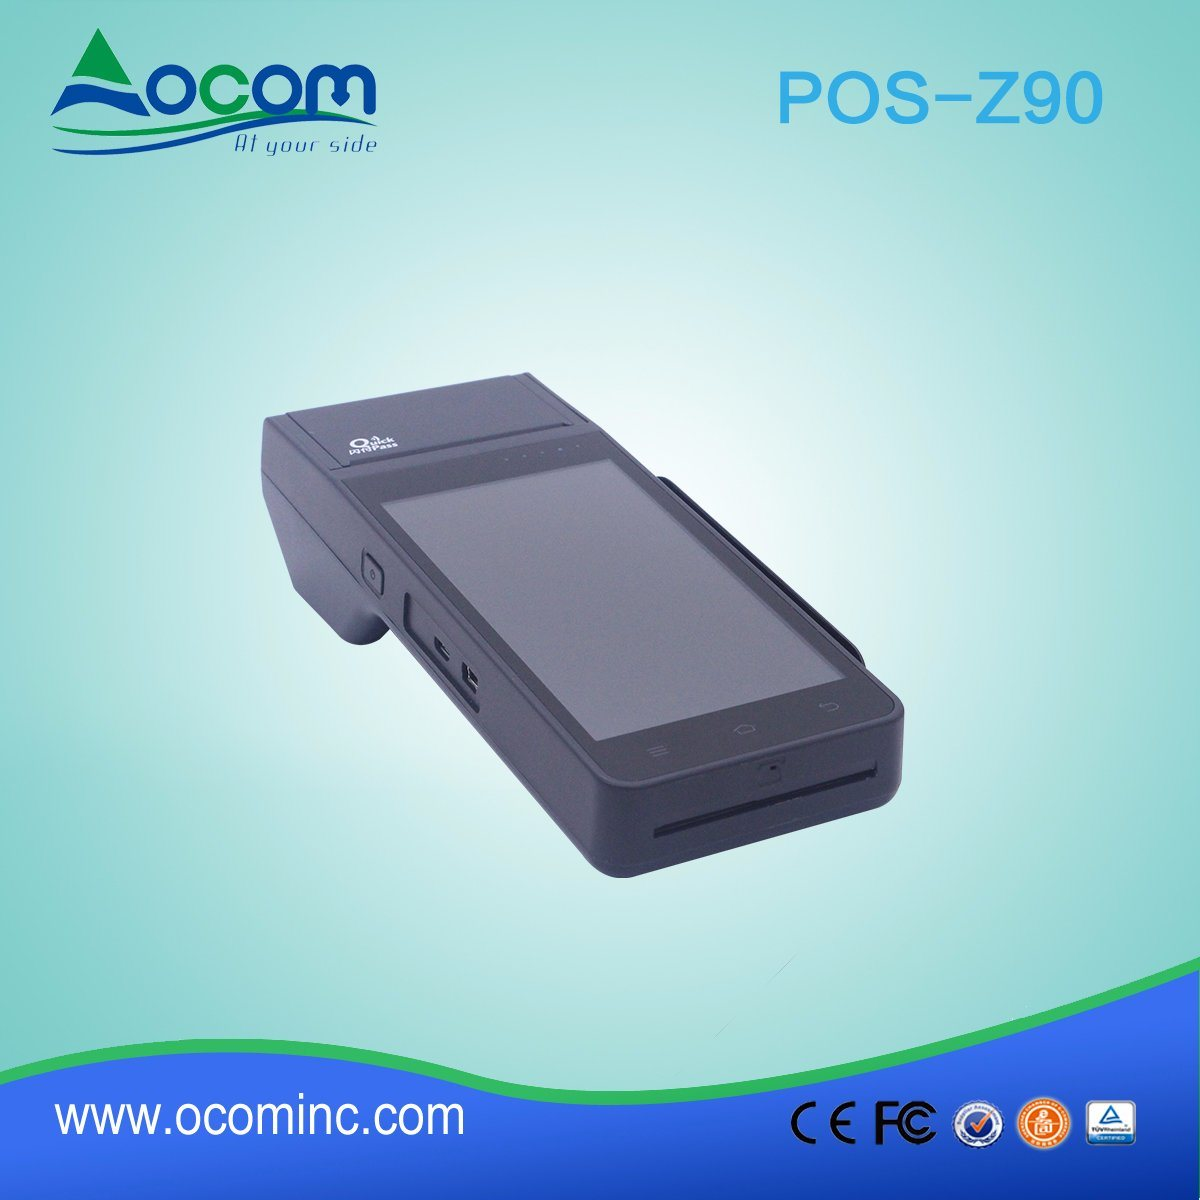 Z90 Android Handheld Payment POS Terminal